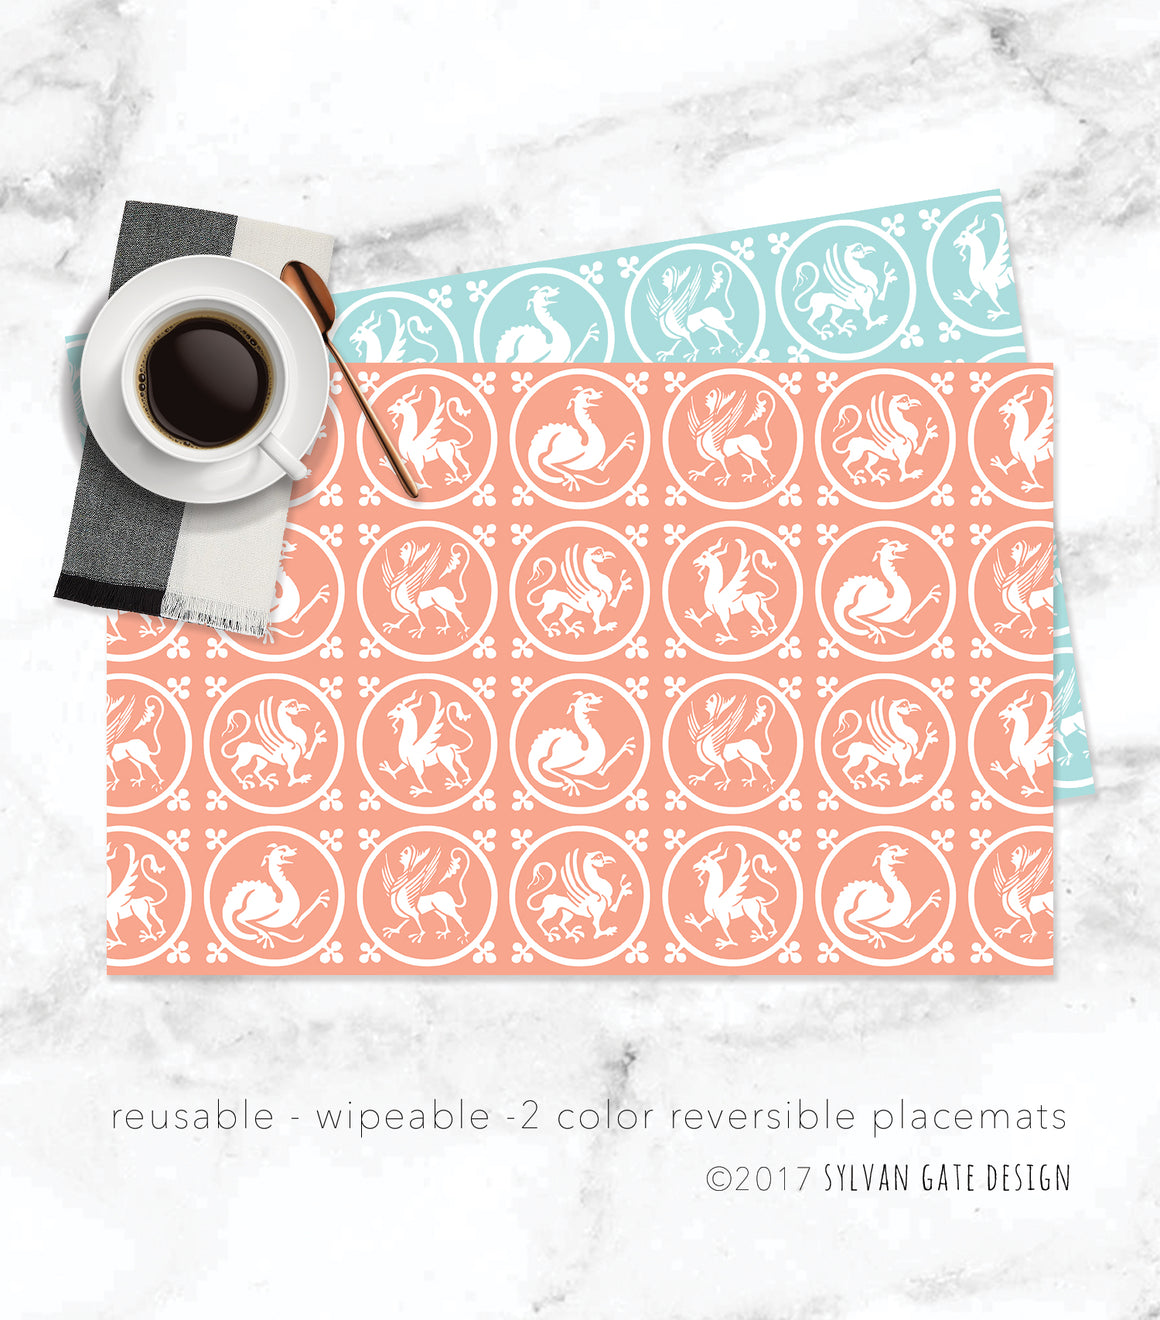 8 Reusable Paper Placemats - Fantastical Beasts | Sylvan Gate Design